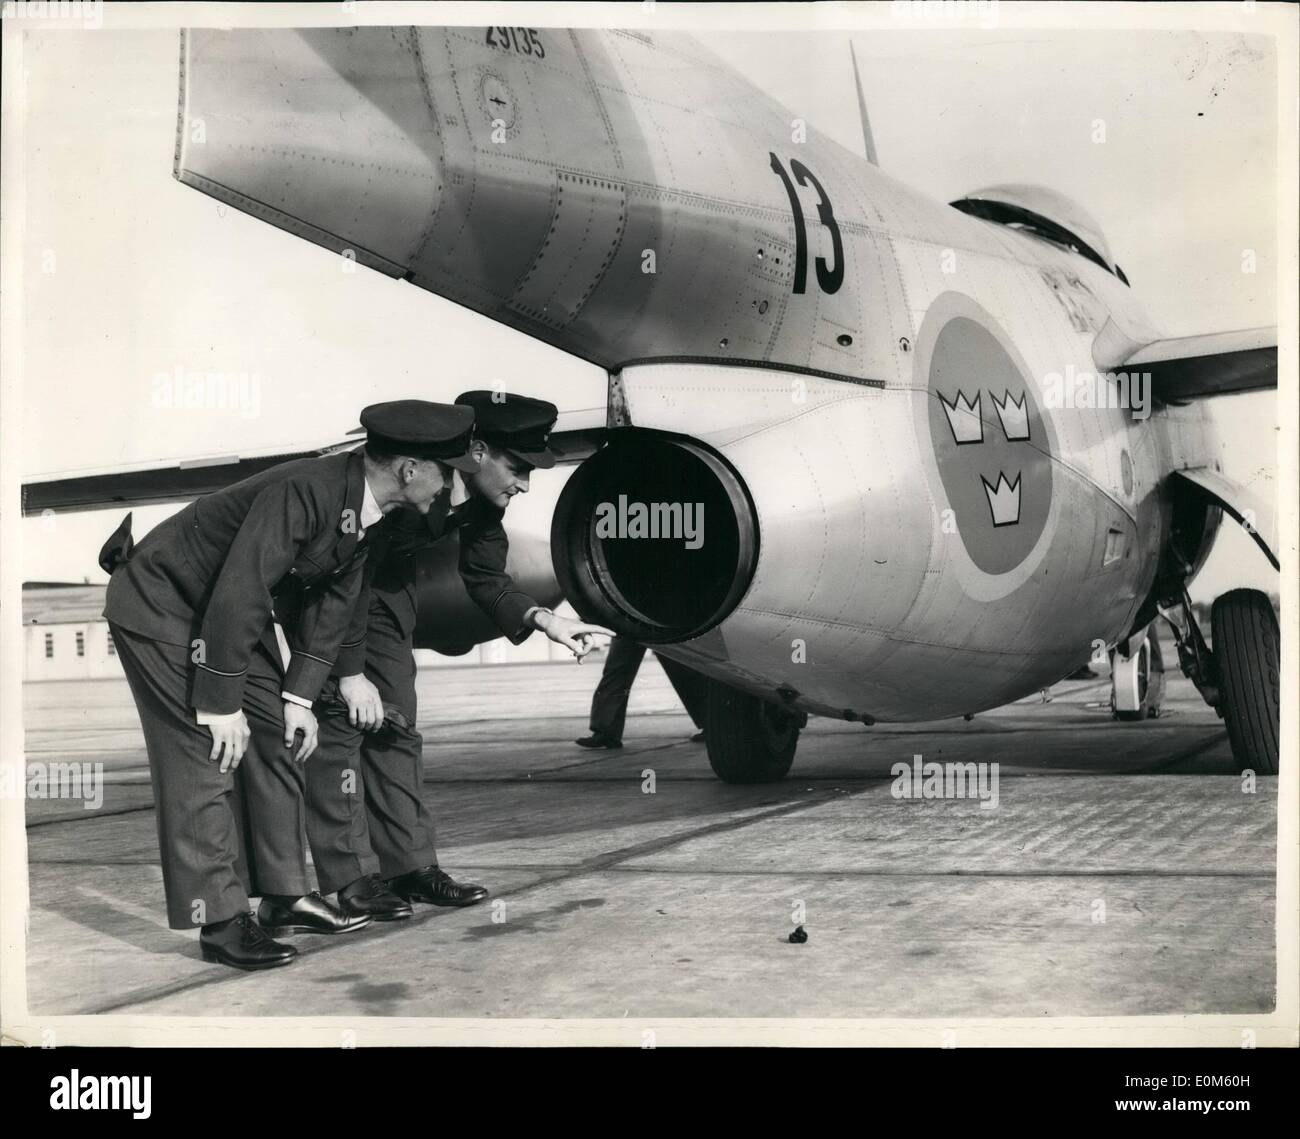 Oct. 10, 1953 - Royal Swedish Air Force Goodwill Visit To R.A.F.: A new swept-wing barrel-fuselage jet fighter will be seen over England during the next few days. It is the j.29 of the royal Swedish Air Force, which is faster than any of the Meteors with which the RAF fighter squadrons are equipped. Today, eight of the Swedish J 29s landed at R.A.F. Station, Waterbeach Cambridge, on a week's goodwill mission. Photo shows. Flight Officer Wirdhan (nearest camera) and Flying Officer Barnard, two British pilots, examining the jet pipe of the Swedish J.29, at Waterbeach today. - Stock Image